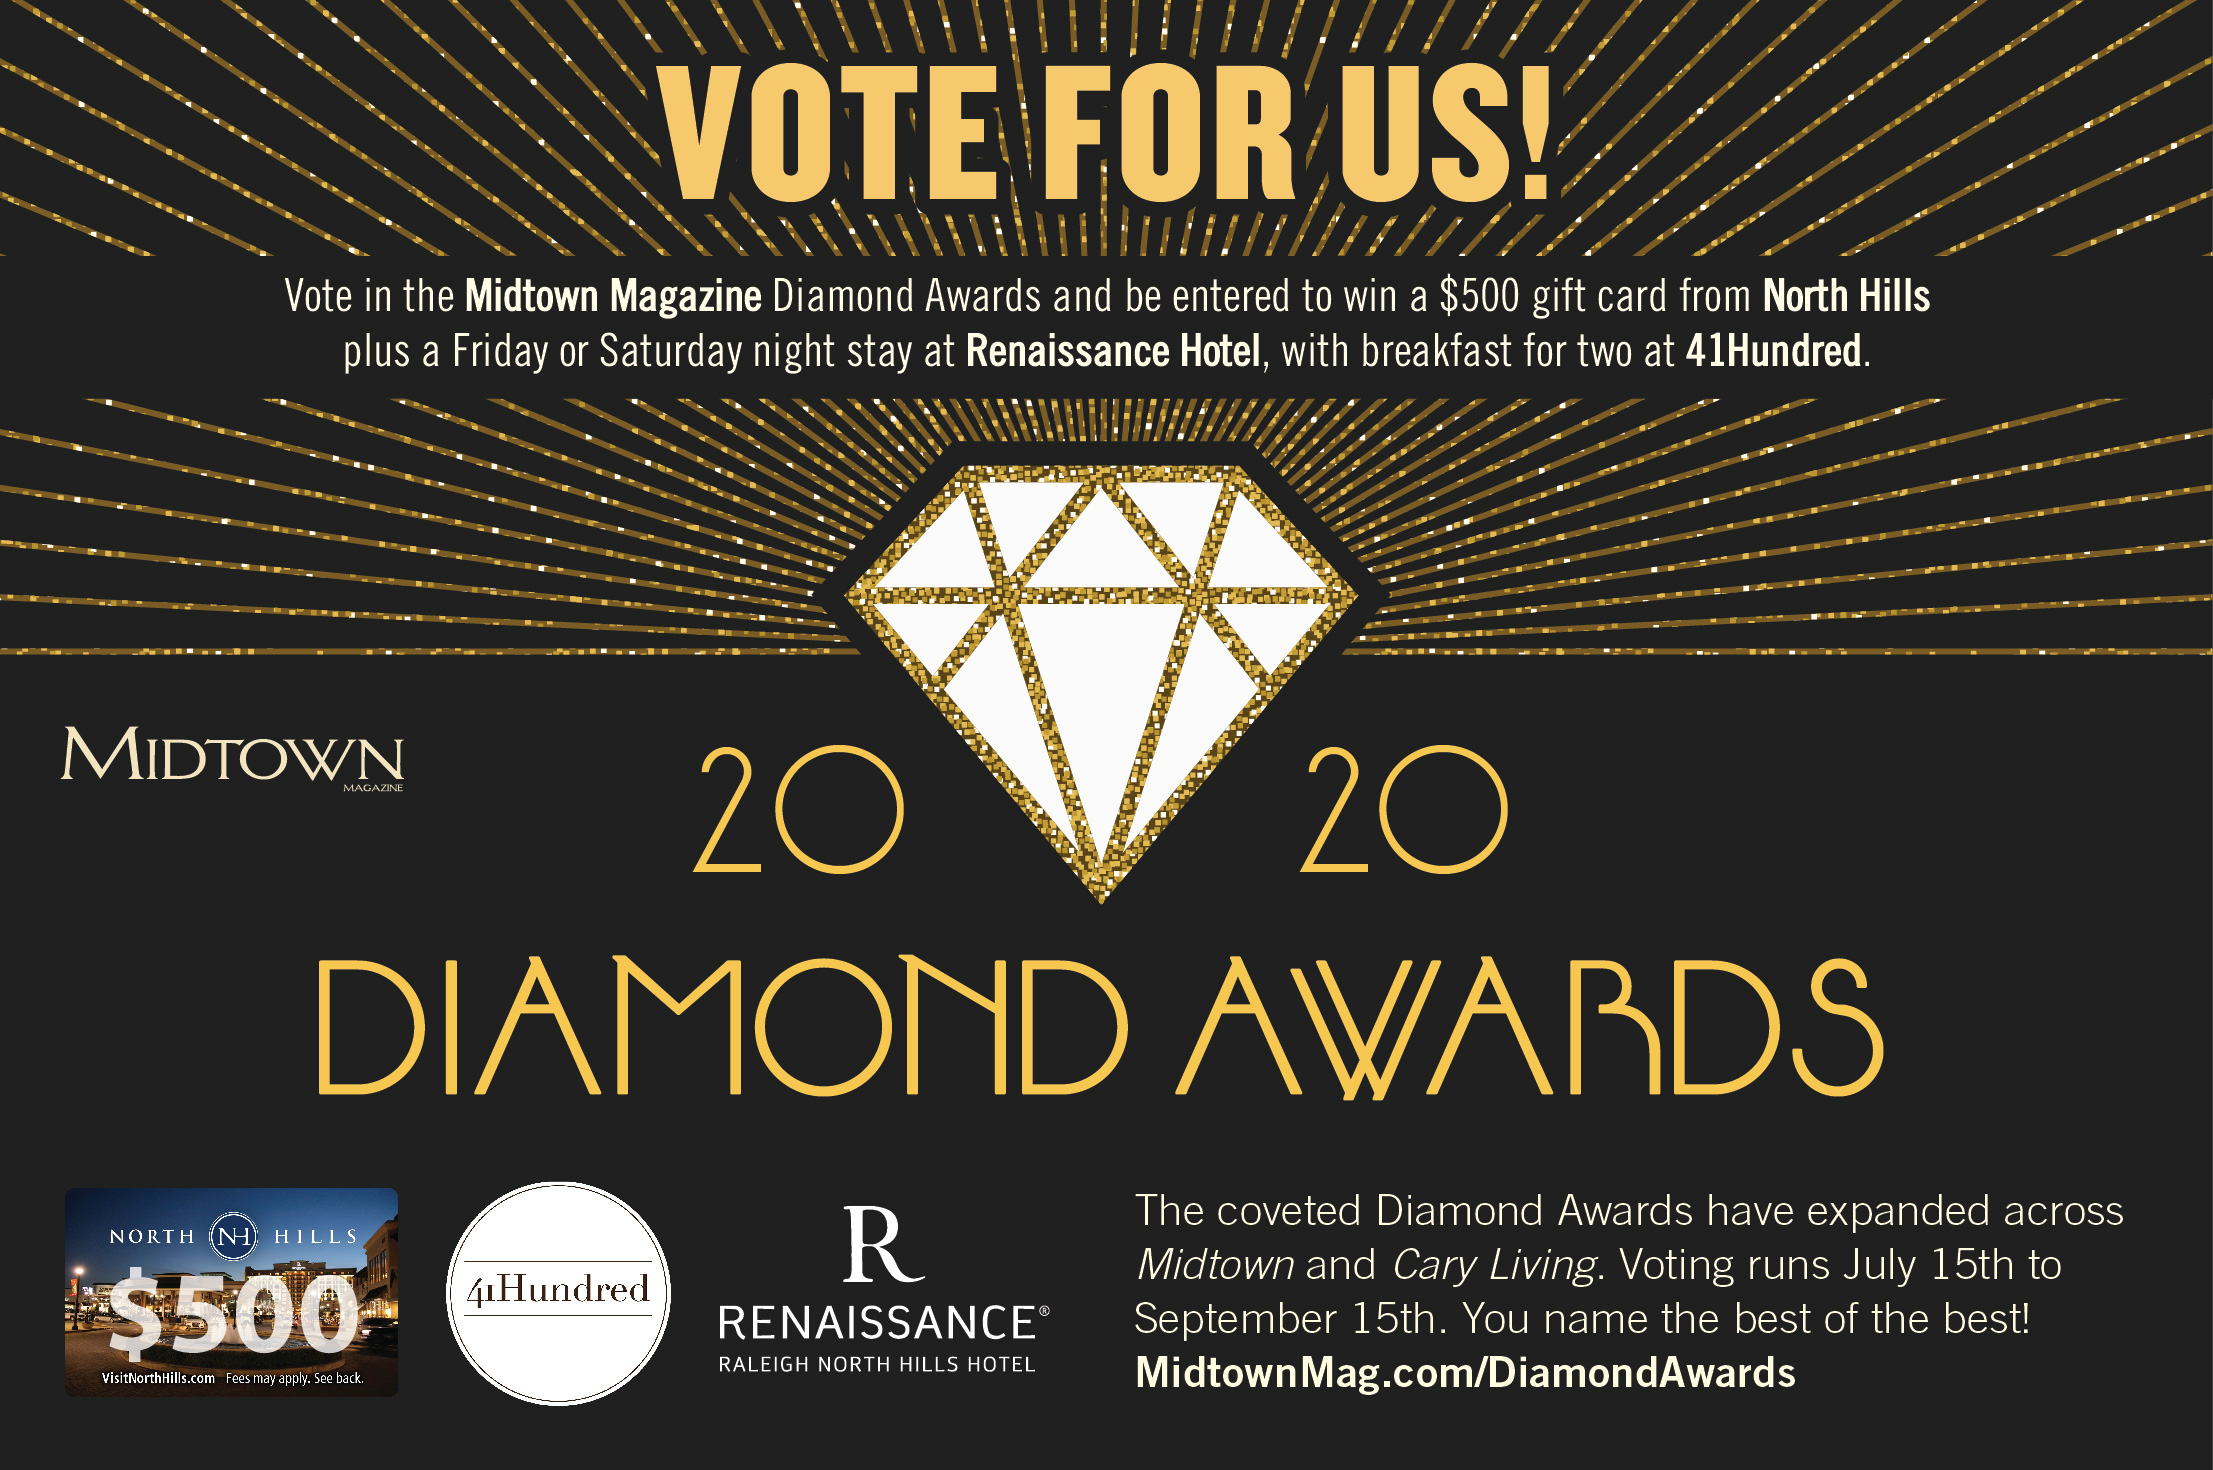 t's time again for the Diamond Awards hosted by Midtown Magazine! Cast your vote between now and Monday, September 16, 2019, for the Best of the Best in Raleigh including Downtown, North Hills, North Raleigh, and all of the metro Raleigh area! If you have joined us for lunch, dinner, drinks, or Sunday brunch lately, and enjoyed your experience, we would love it if you would vote for Midtown Grille in the 2020 Diamond Awards.